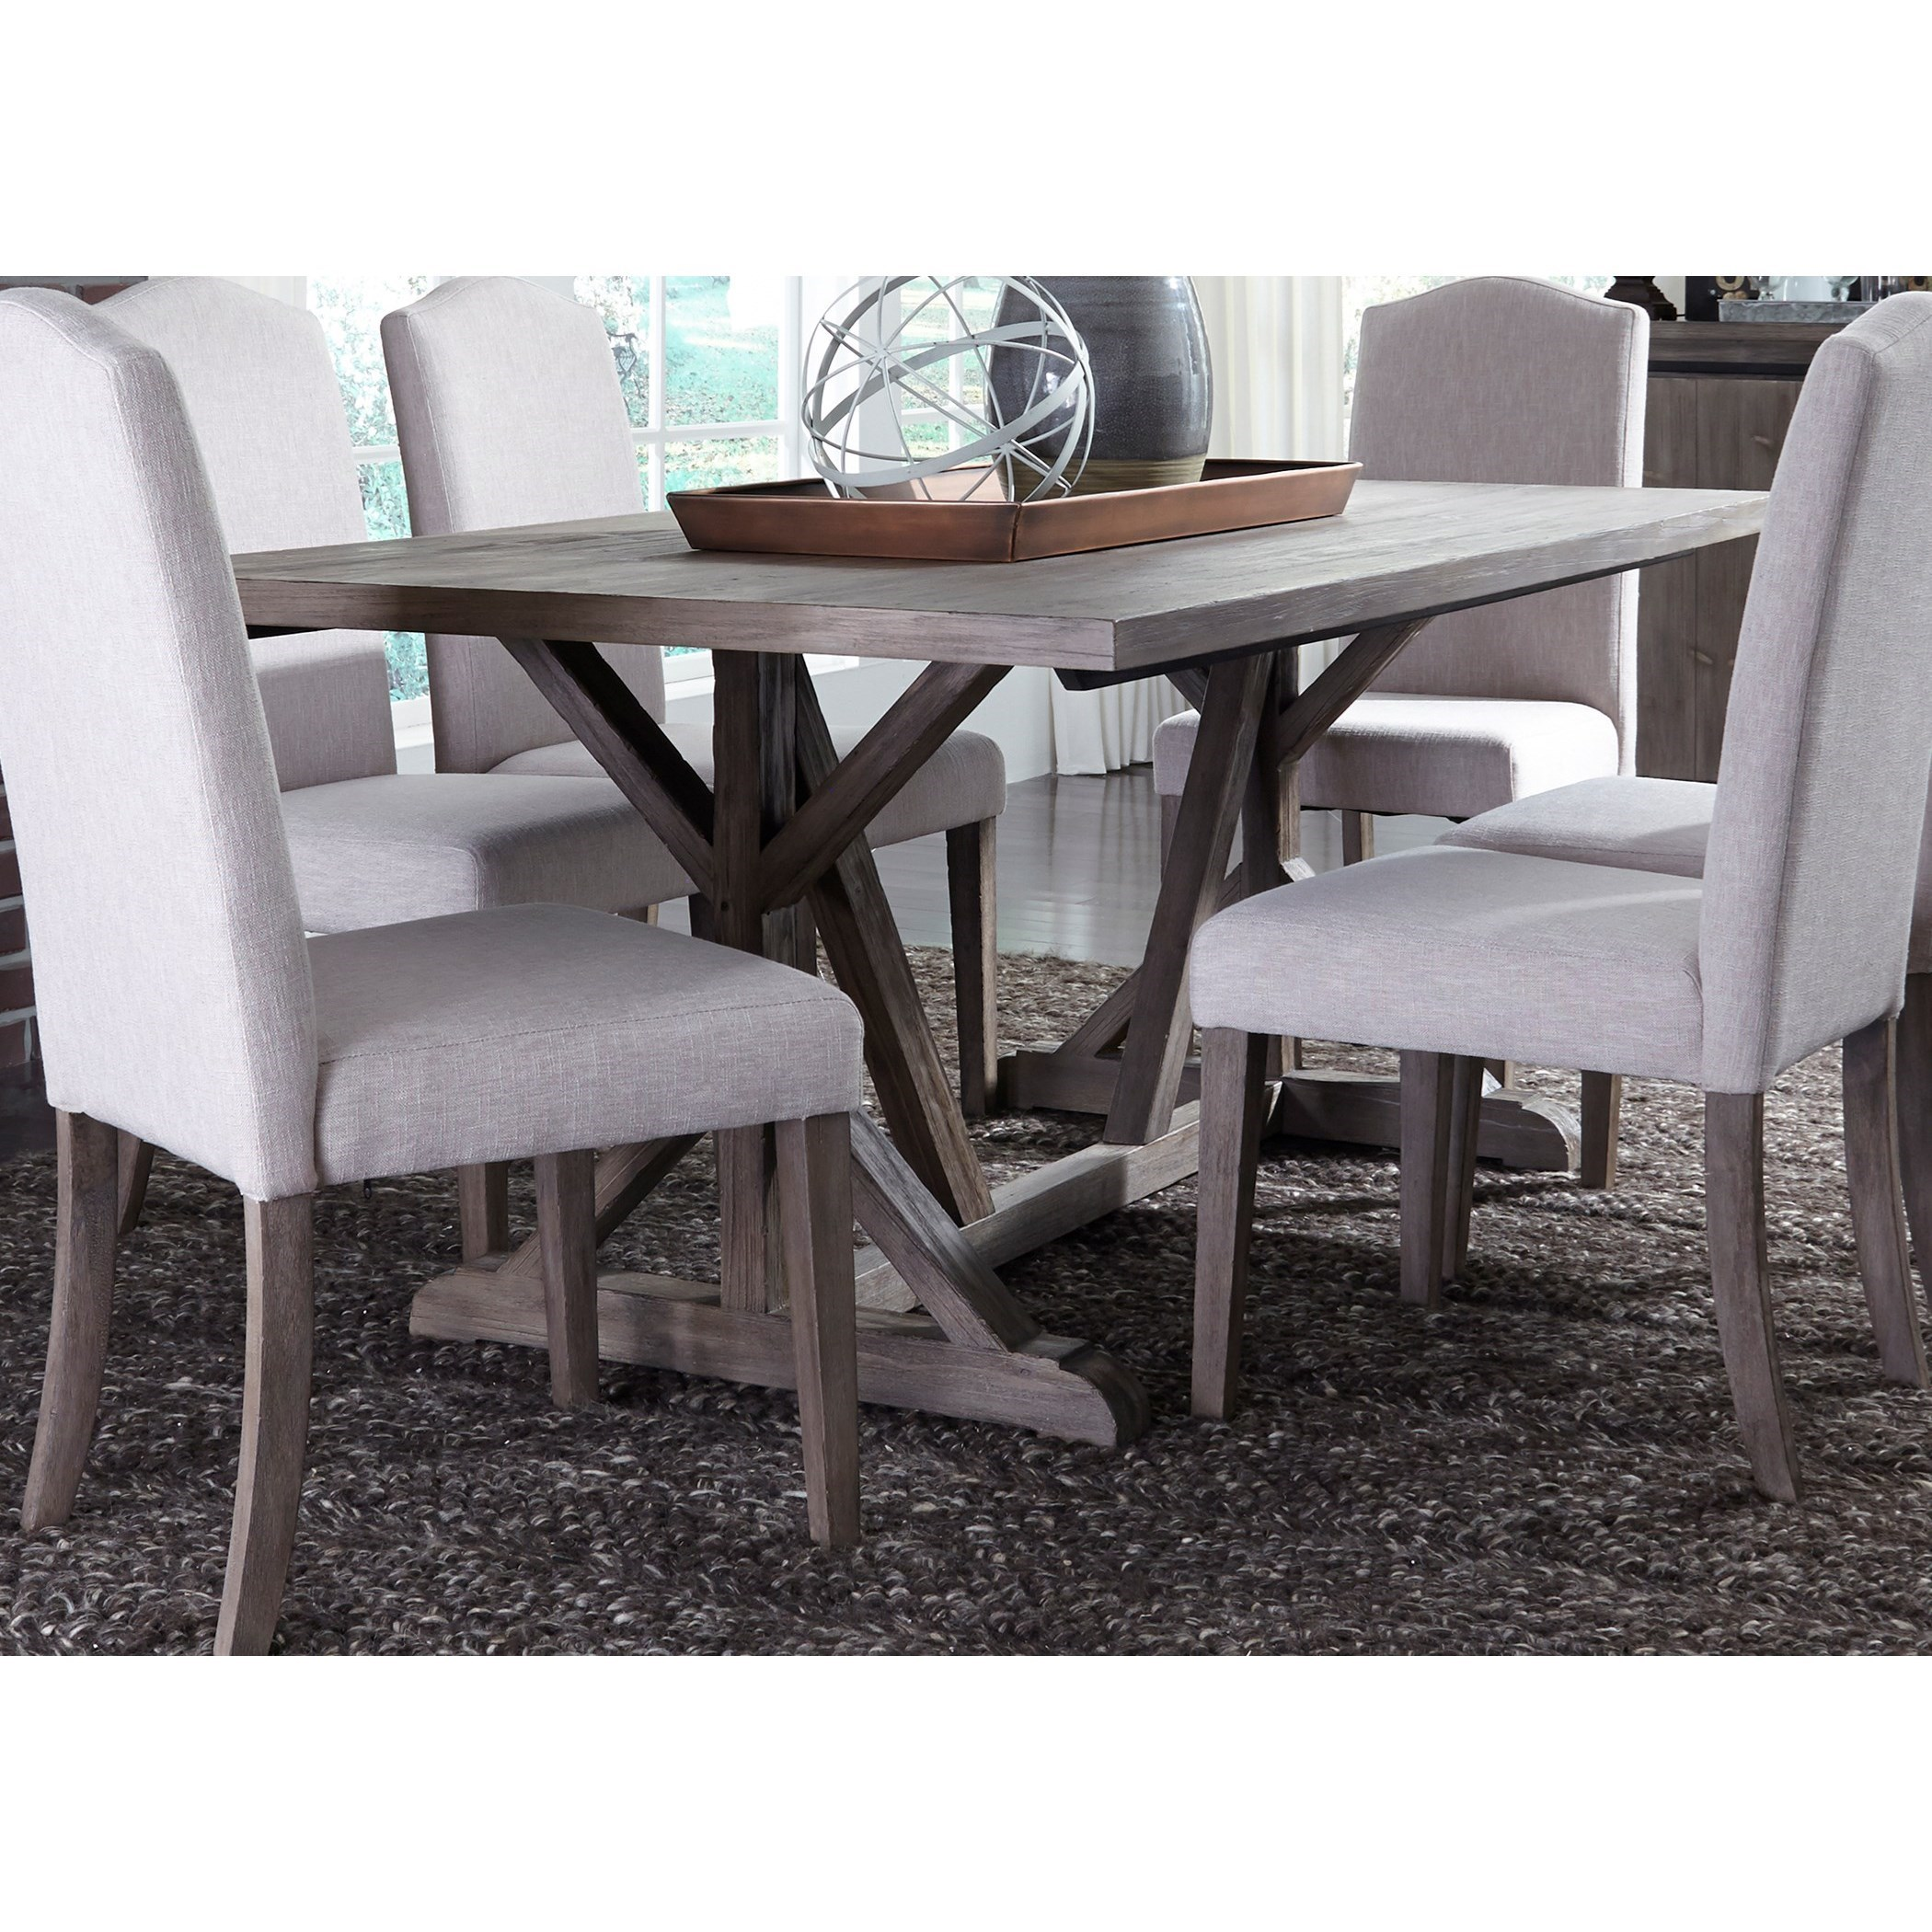 Picture of: Liberty Furniture Carolina Lakes Trestle Table With Weathered Gray Finish Royal Furniture Dining Tables